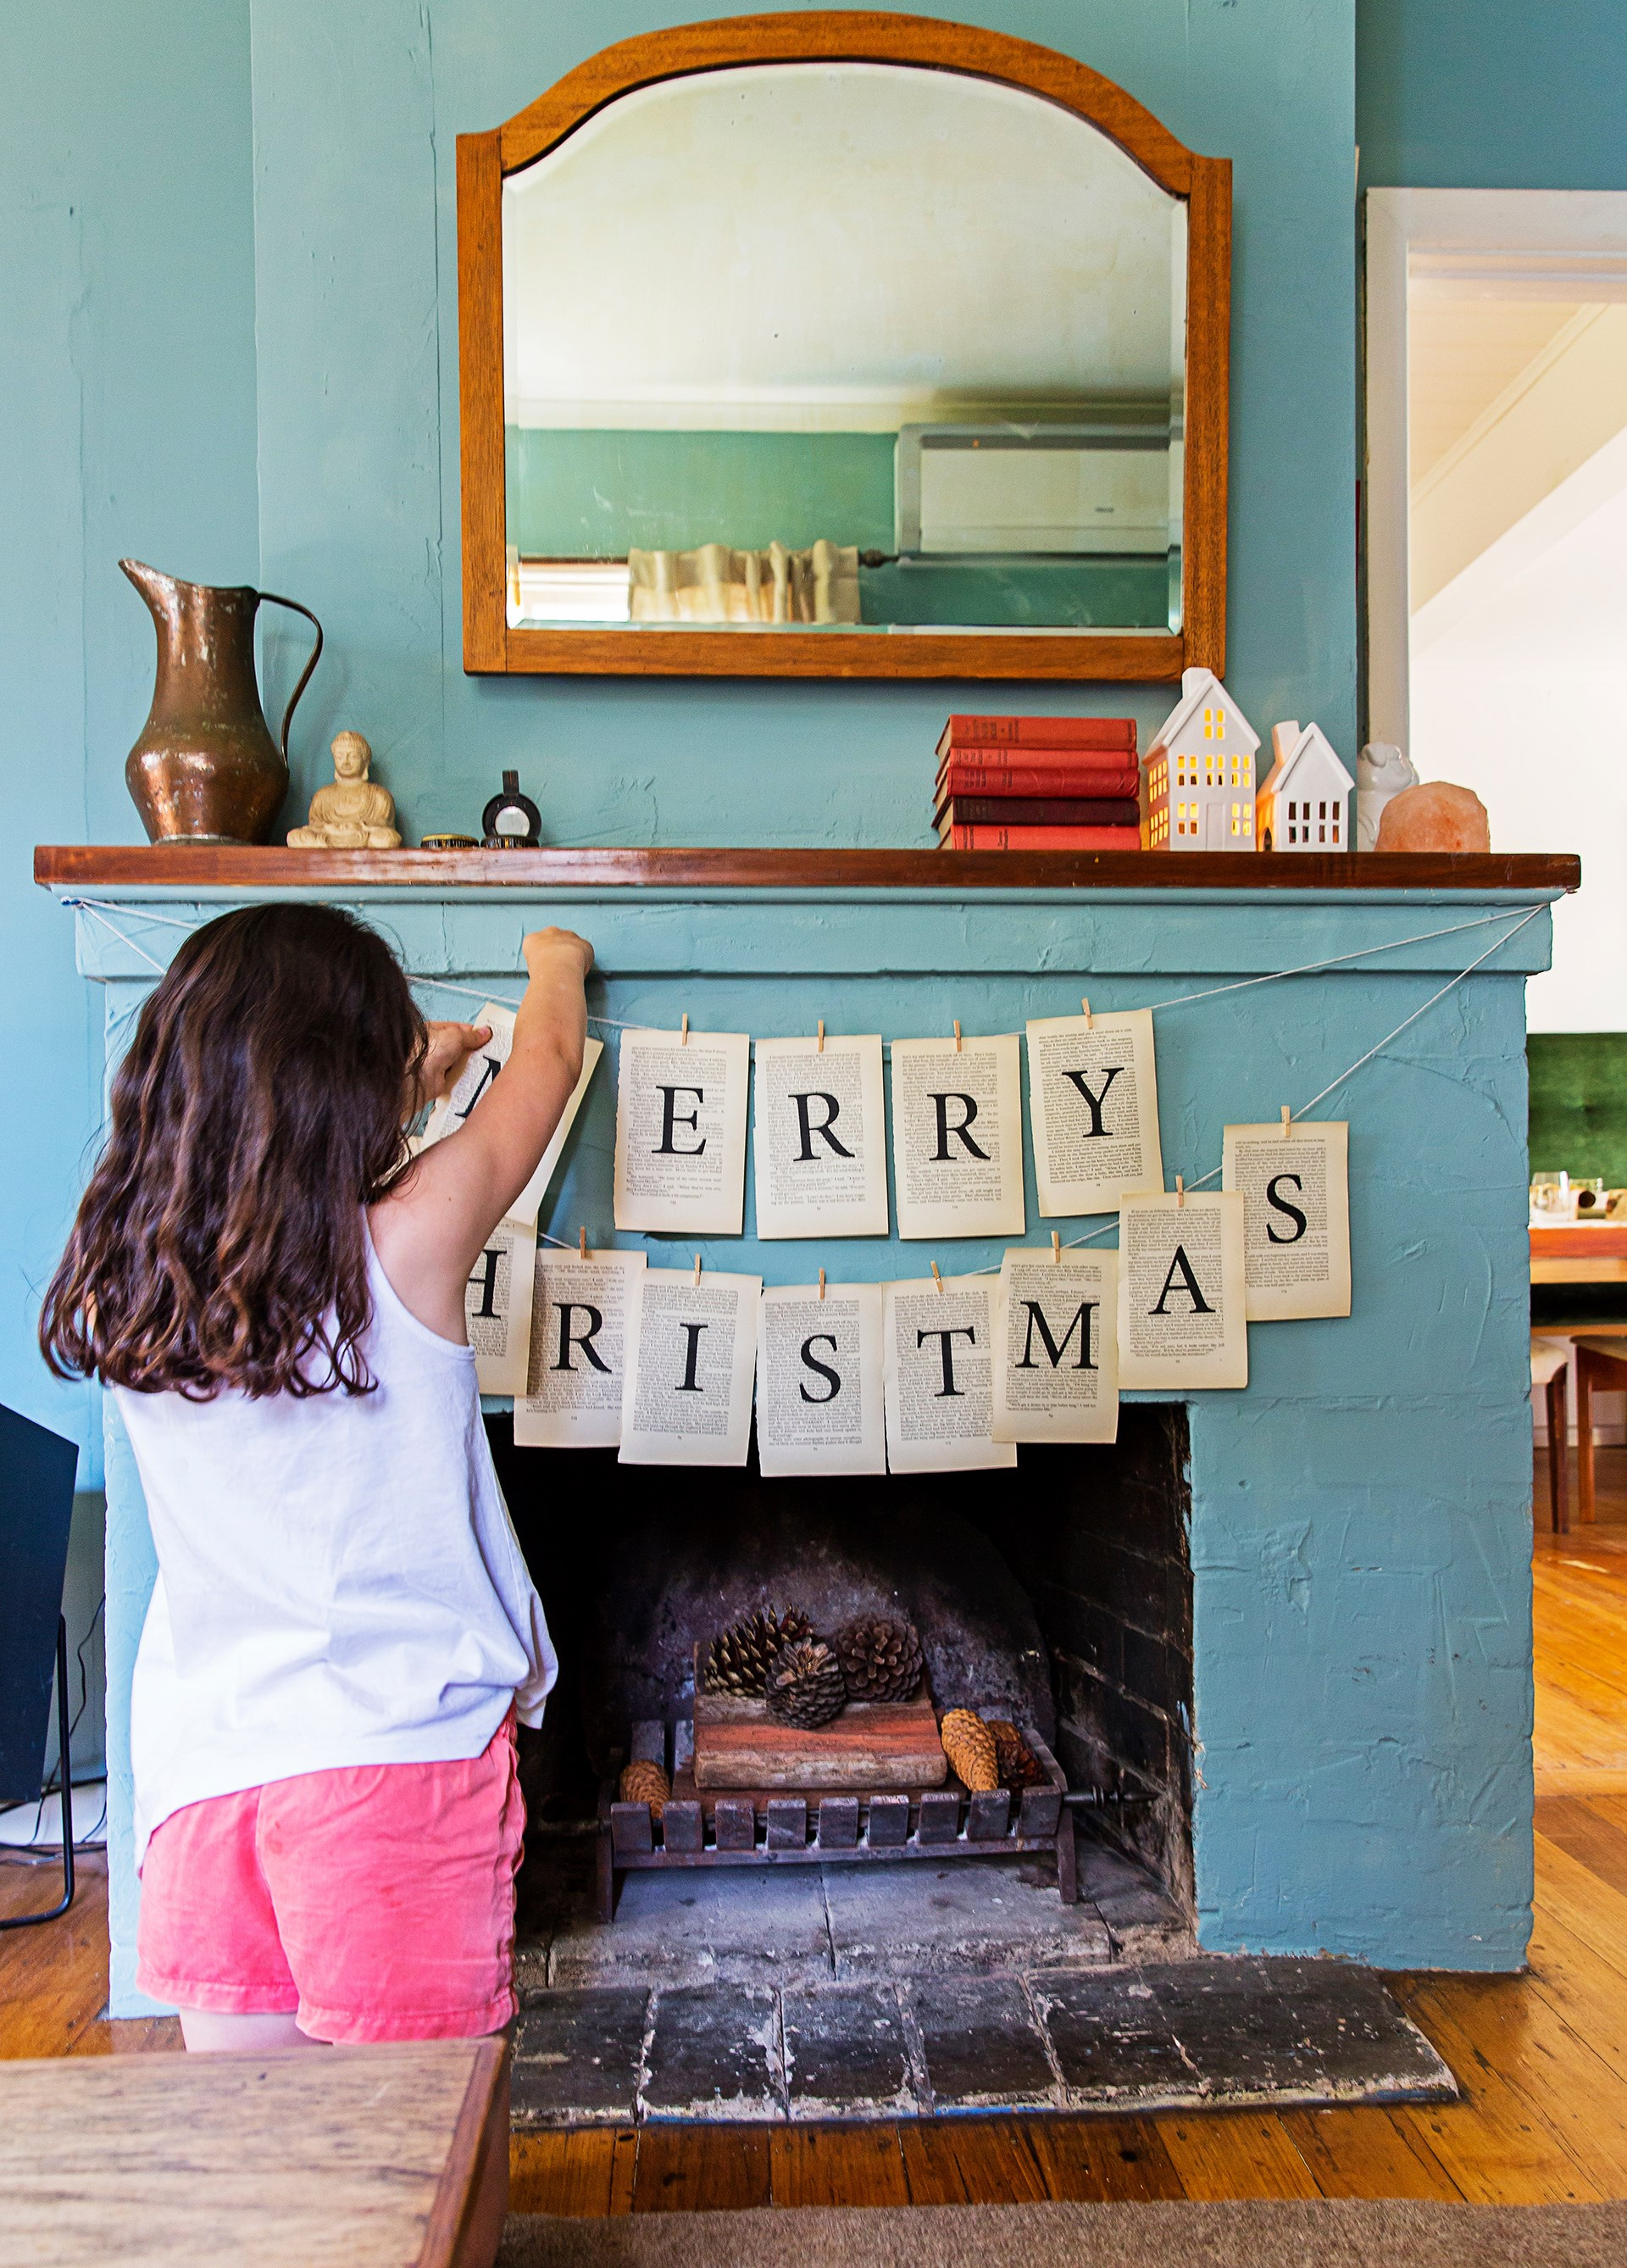 """Merry Christmas"" bunting with a vintage feel is in keeping with this [1940s weatherboard cottage in rural Victoria](http://www.homestolove.com.au/a-cottage-restoration-in-rural-victoria-4364